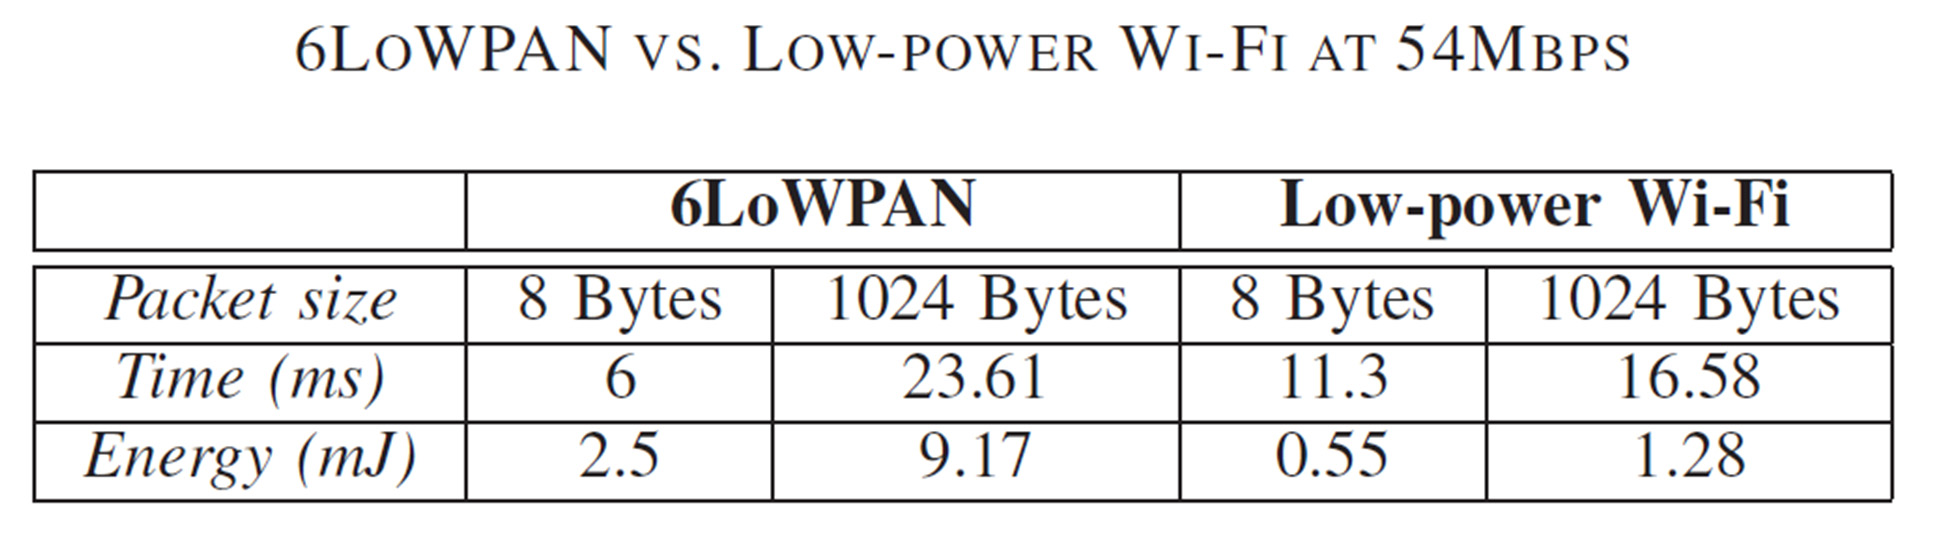 LP Wifi vs ZigBee Capillary M2M 10x Low-power Wi-Fi provides a significant improvement